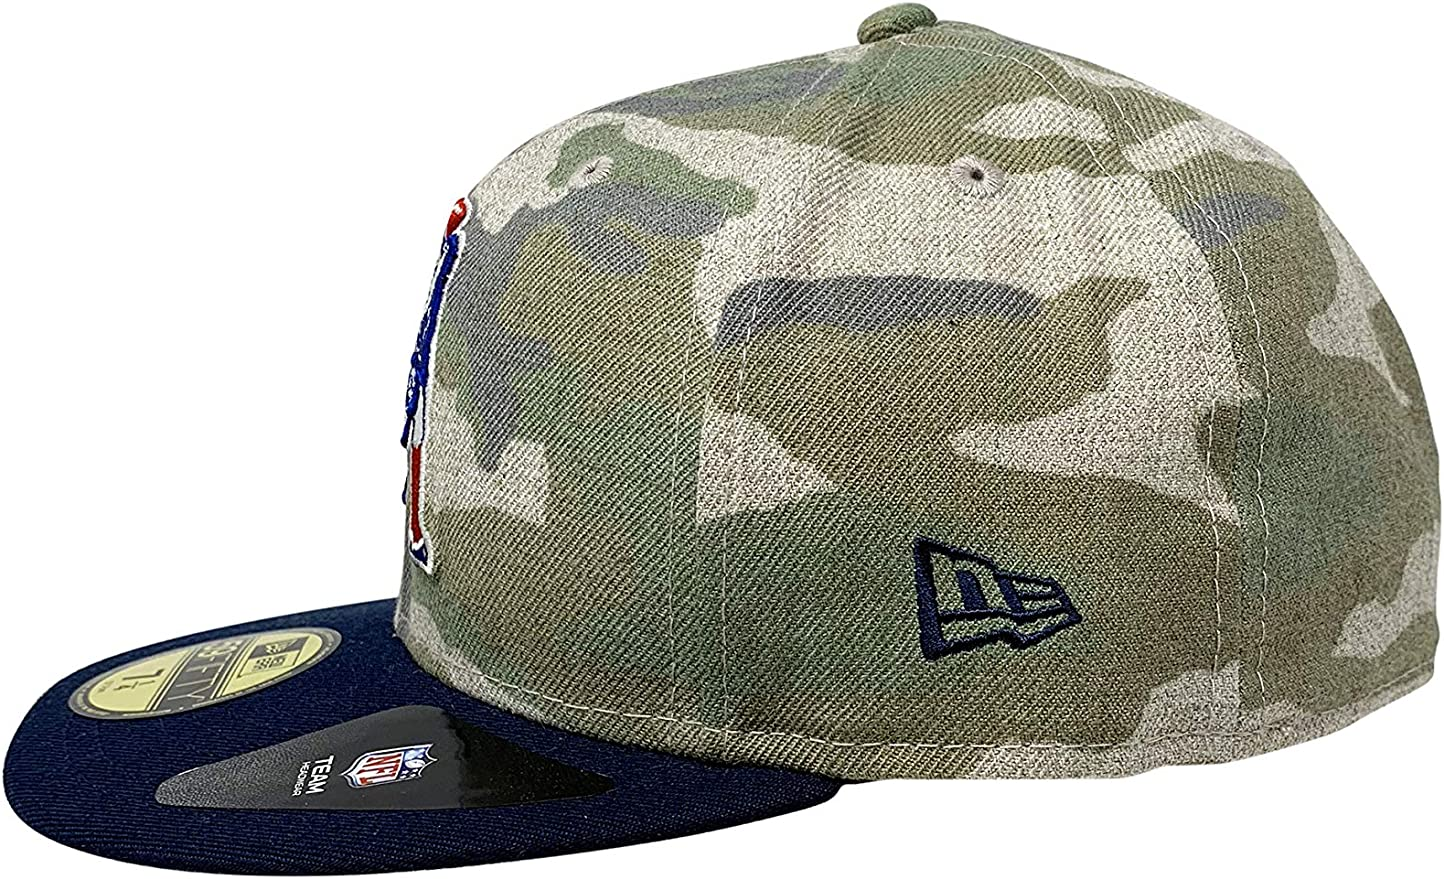 New Era New England Patriots Vintage Camo 59Fifty Fitted Hat NFL Football 5950 Flat Bill Baseball Cap